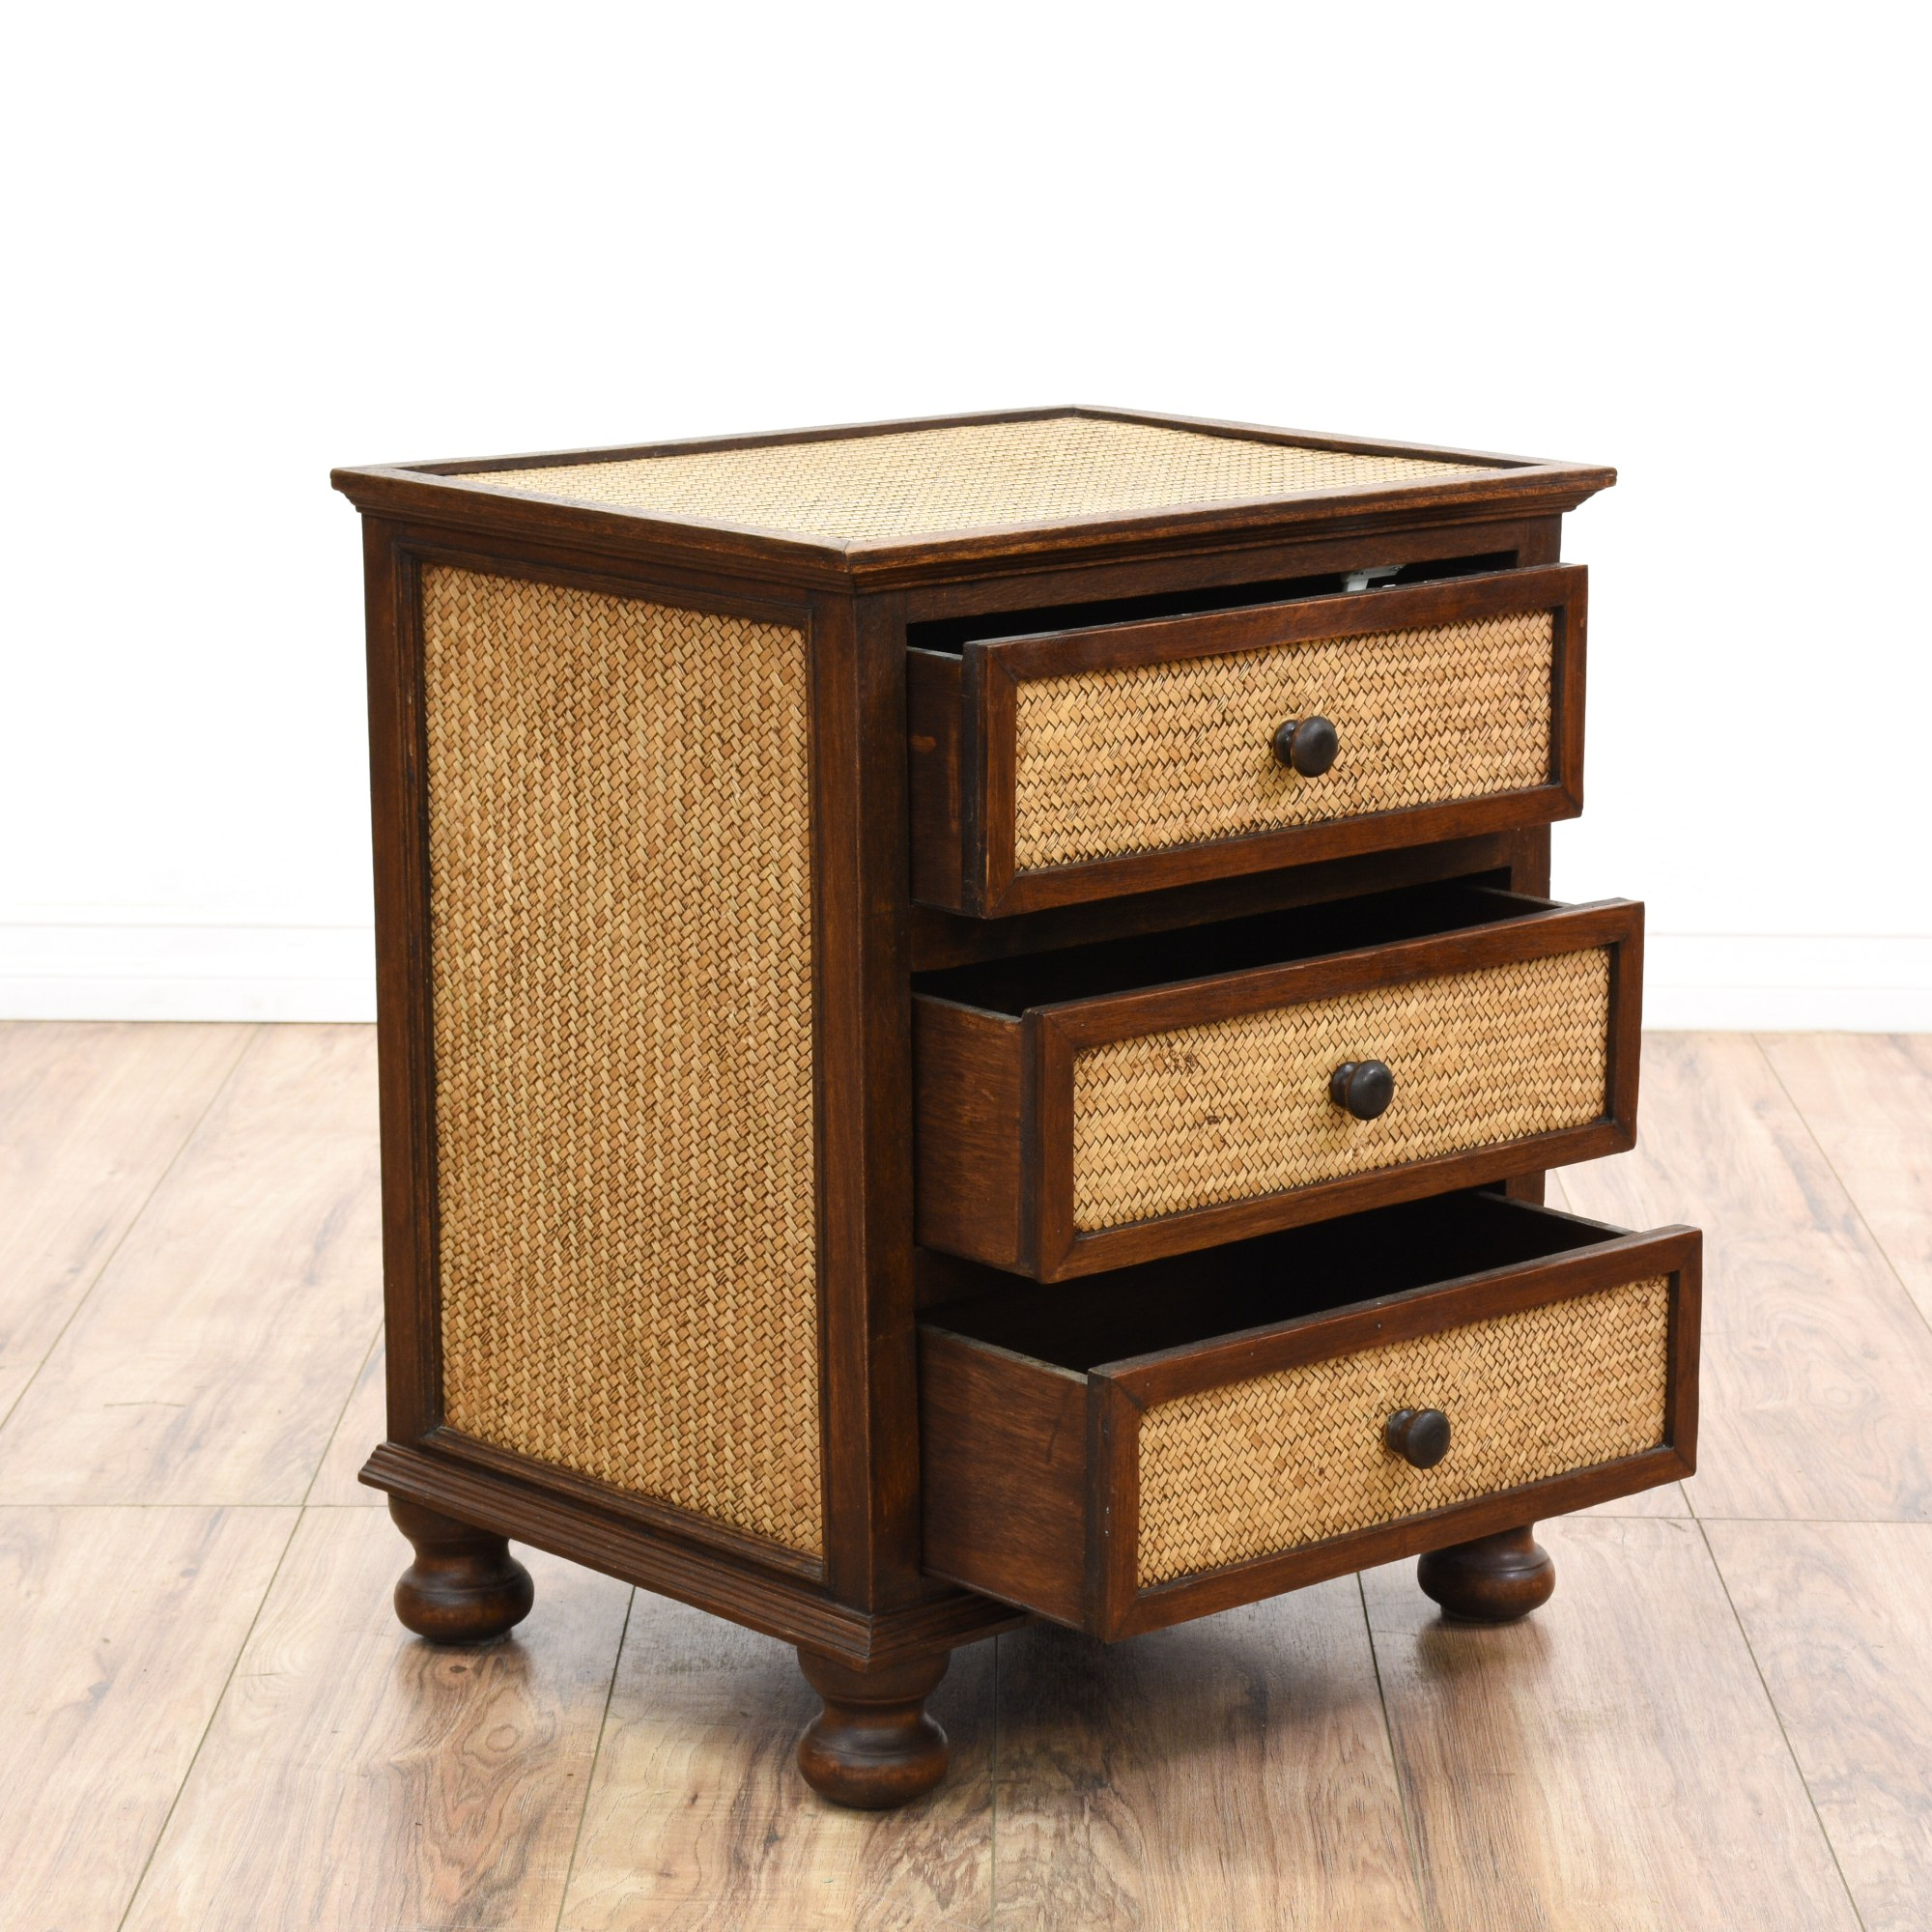 Wood Nightstand with Wicker Drawers